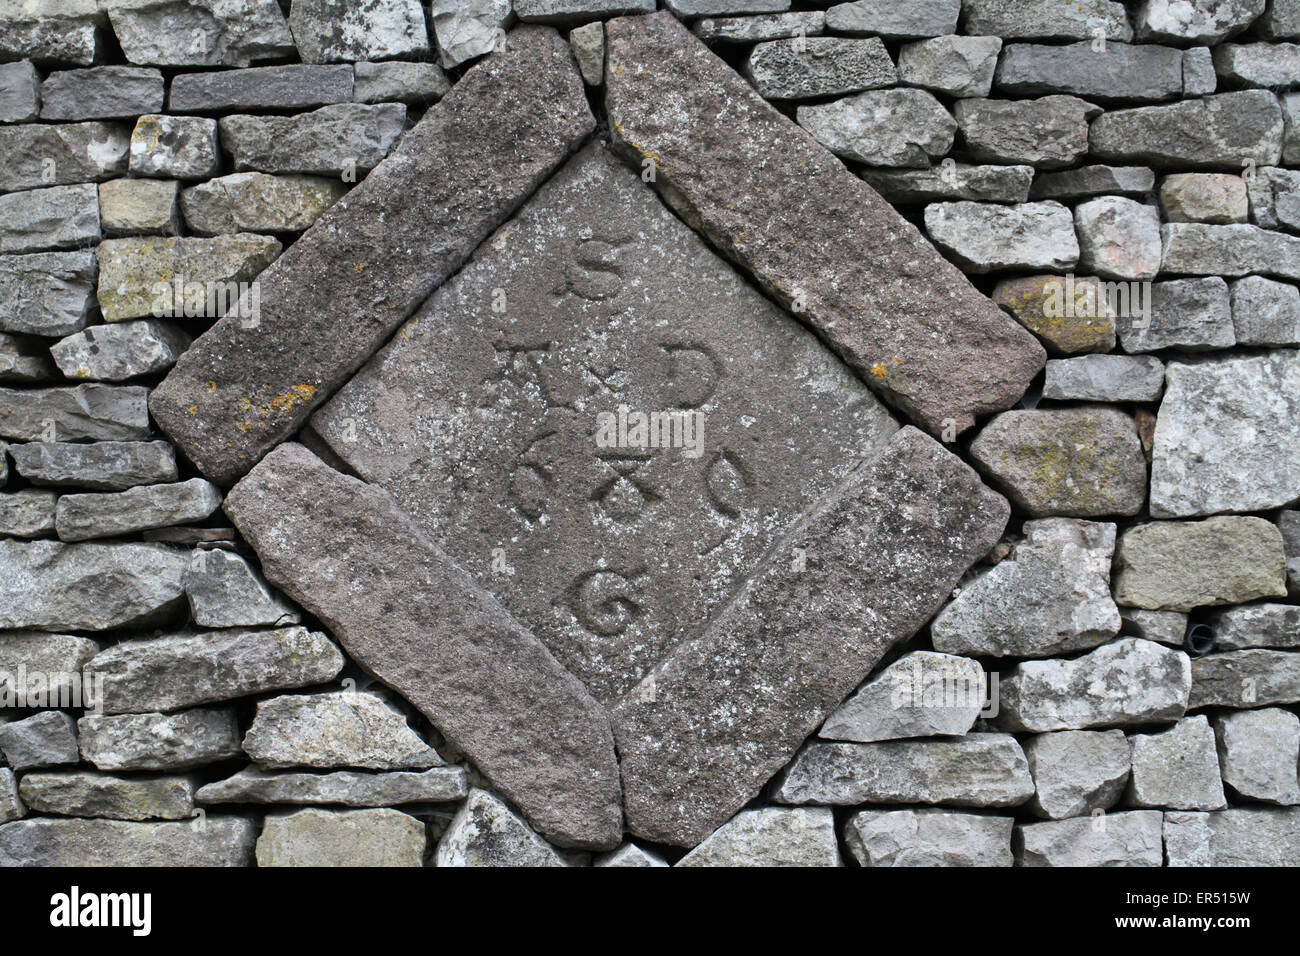 1689 date stone with an interesting history built into a wall near Wirksworth - Stock Image